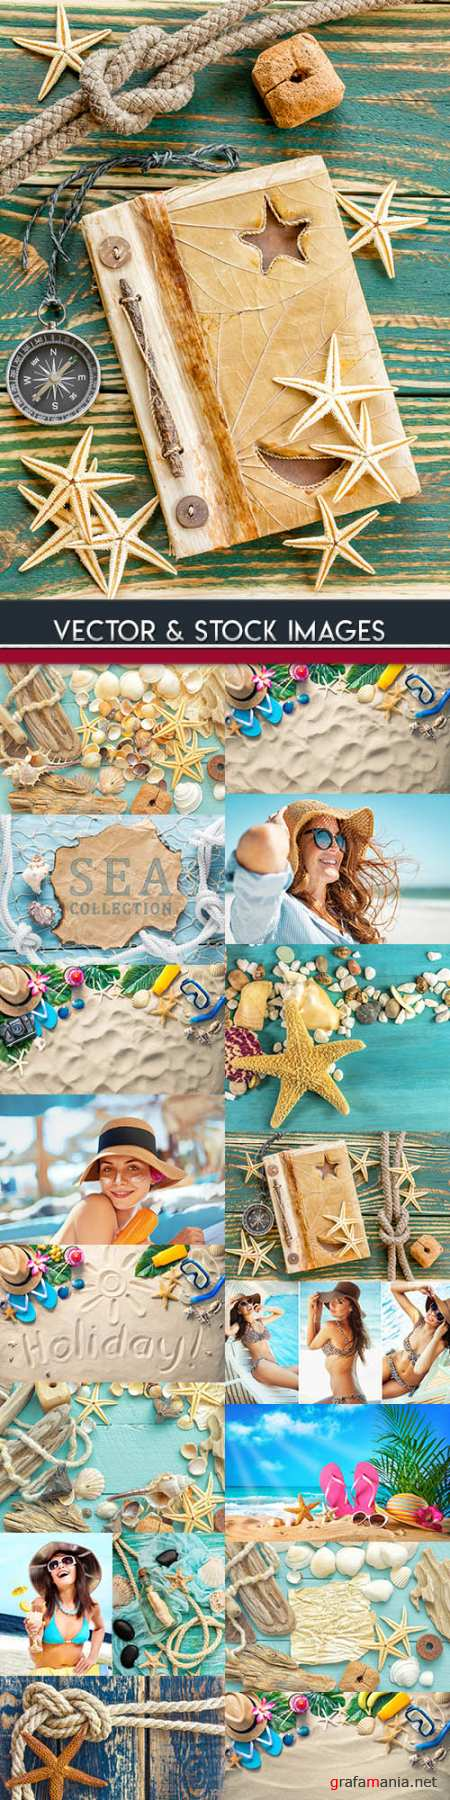 Summer holiday on solar beach big collection